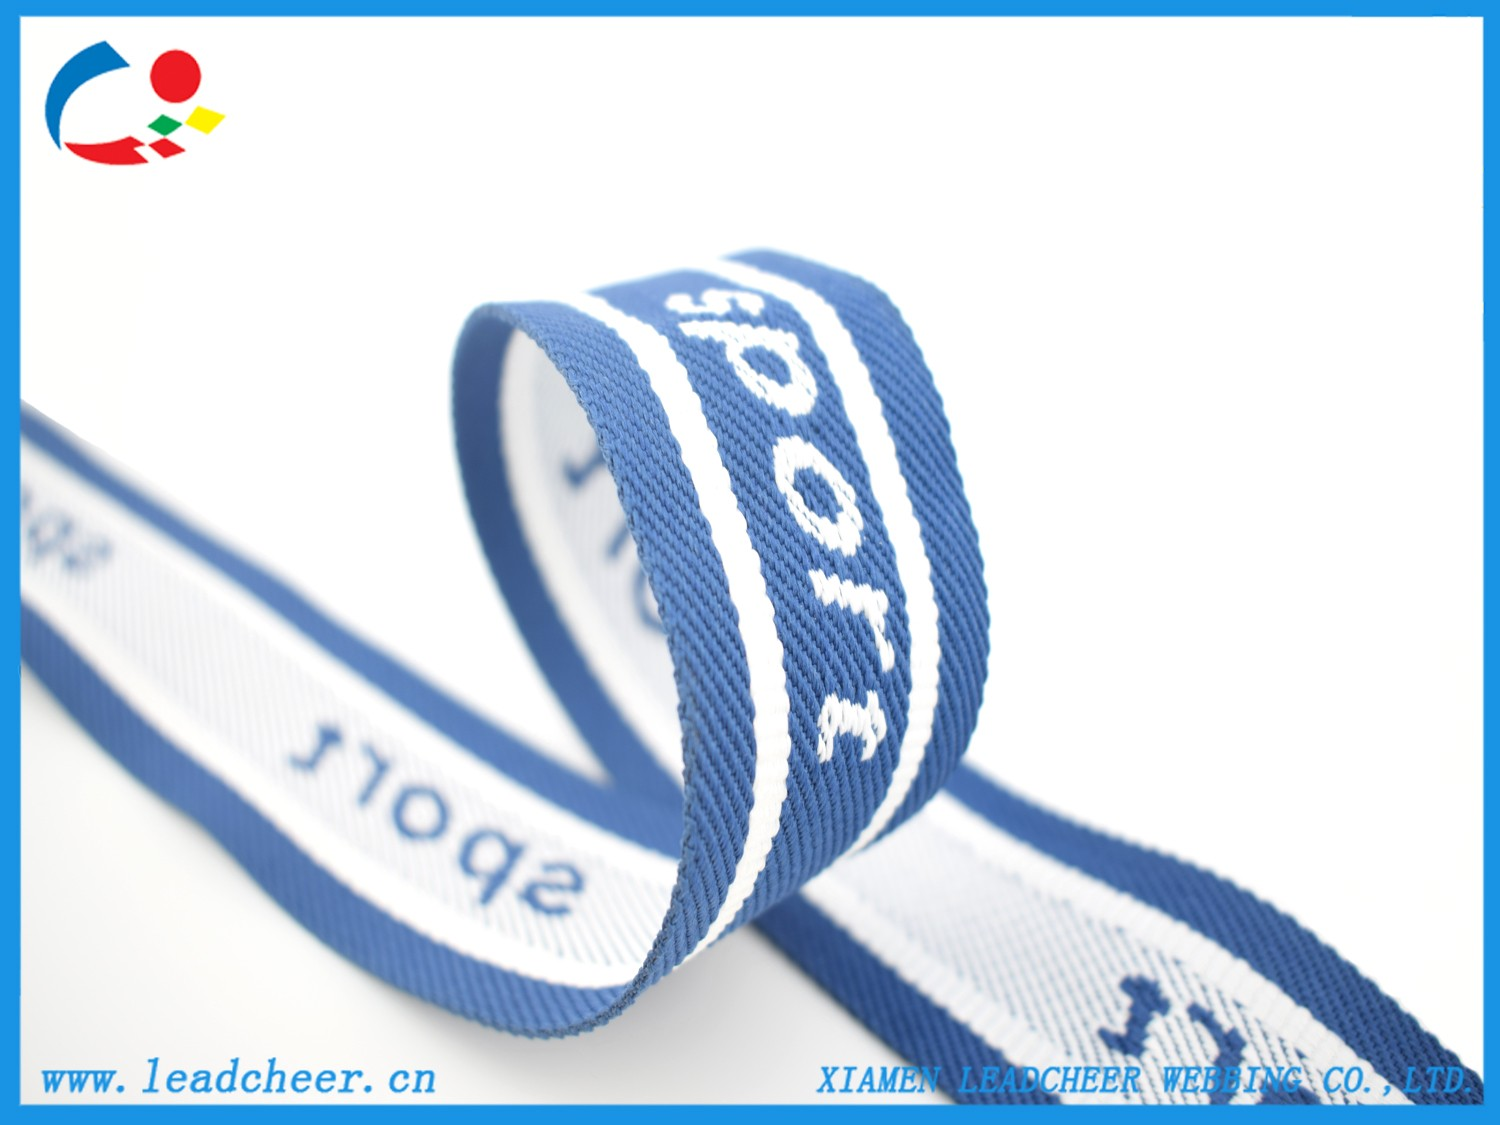 High quality Jacquard Webbing Straps for Sport Bags Quotes,China Jacquard Webbing Straps for Sport Bags Factory,Jacquard Webbing Straps for Sport Bags Purchasing